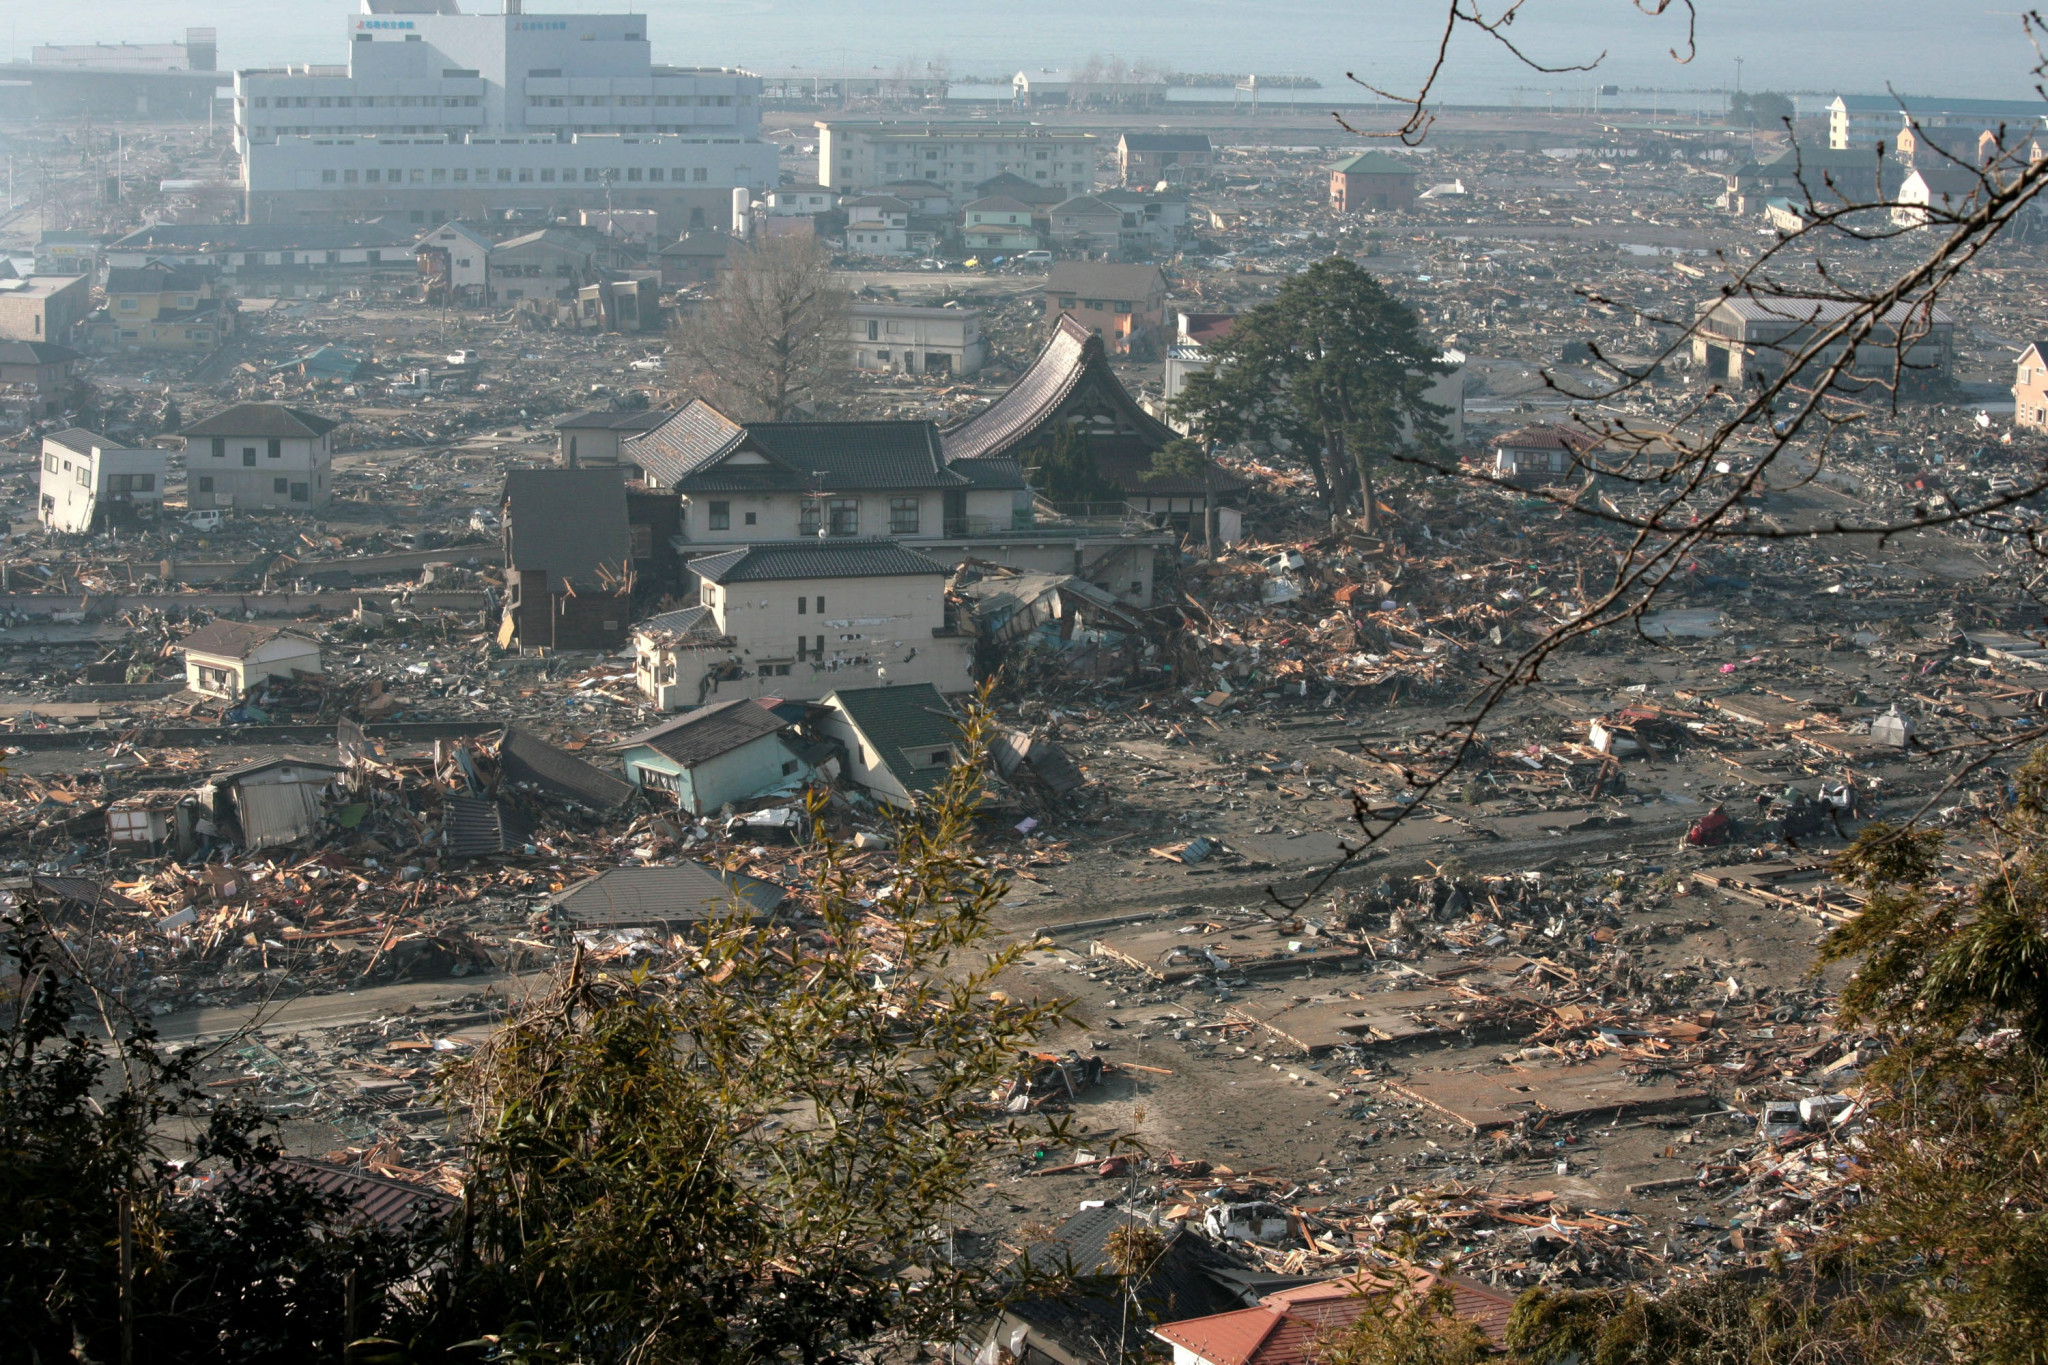 Fukushima has been undergoing regeneration following the destructive Great East Japan Earthquake in 2011 ©Getty Images